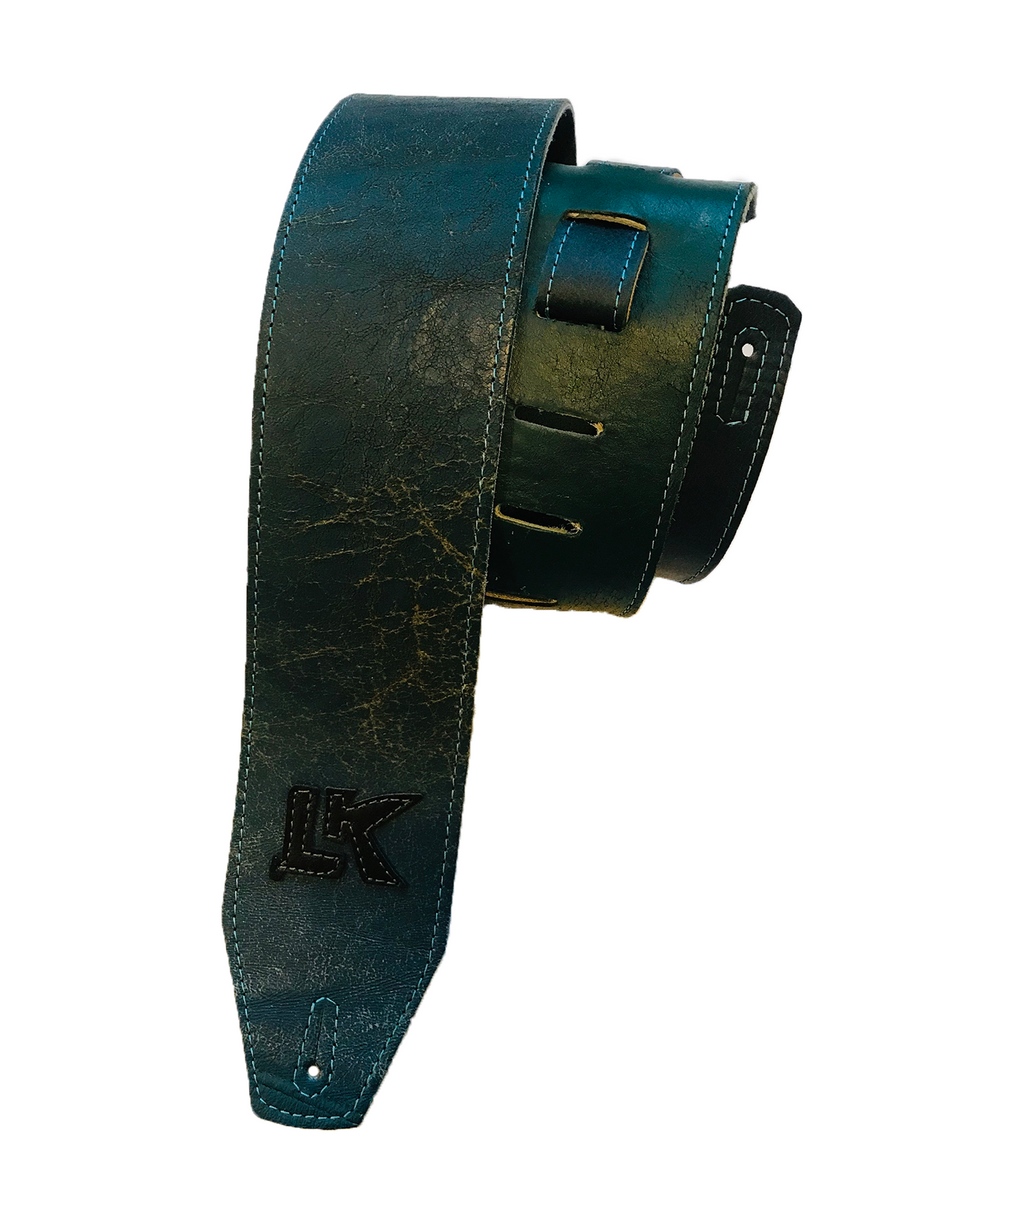 LK Distressed Teal Strap